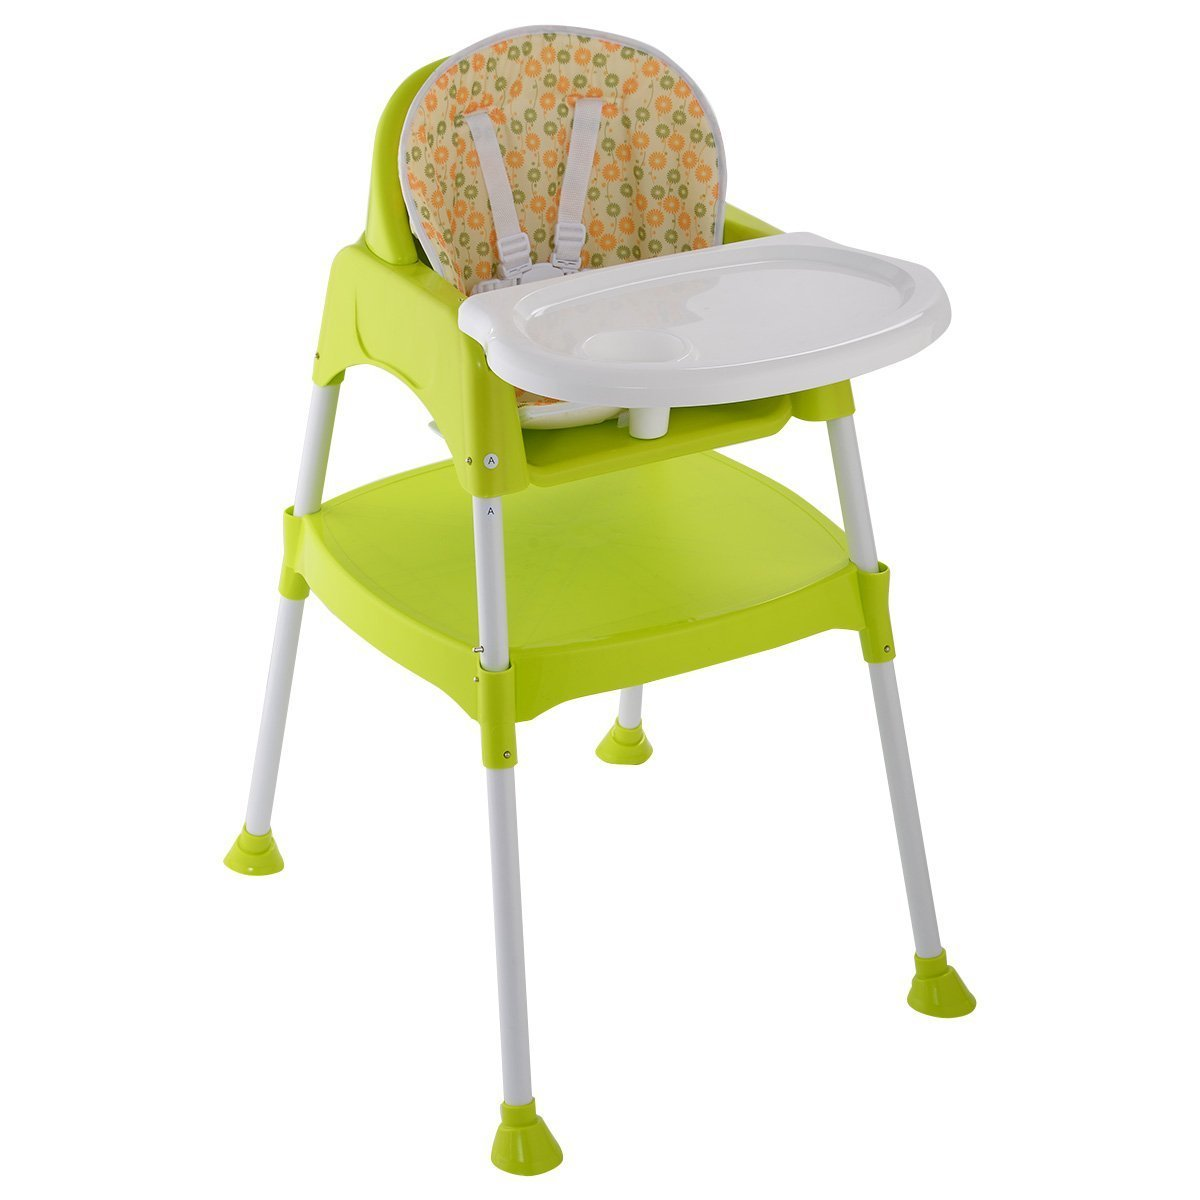 Costzon Convertible High Chair, 3 in 1 Table and Chair Set, Snacker High Chair Seat, Toddler Booster Furniture, Baby Feeding with Tray & Cup Holder (Green)